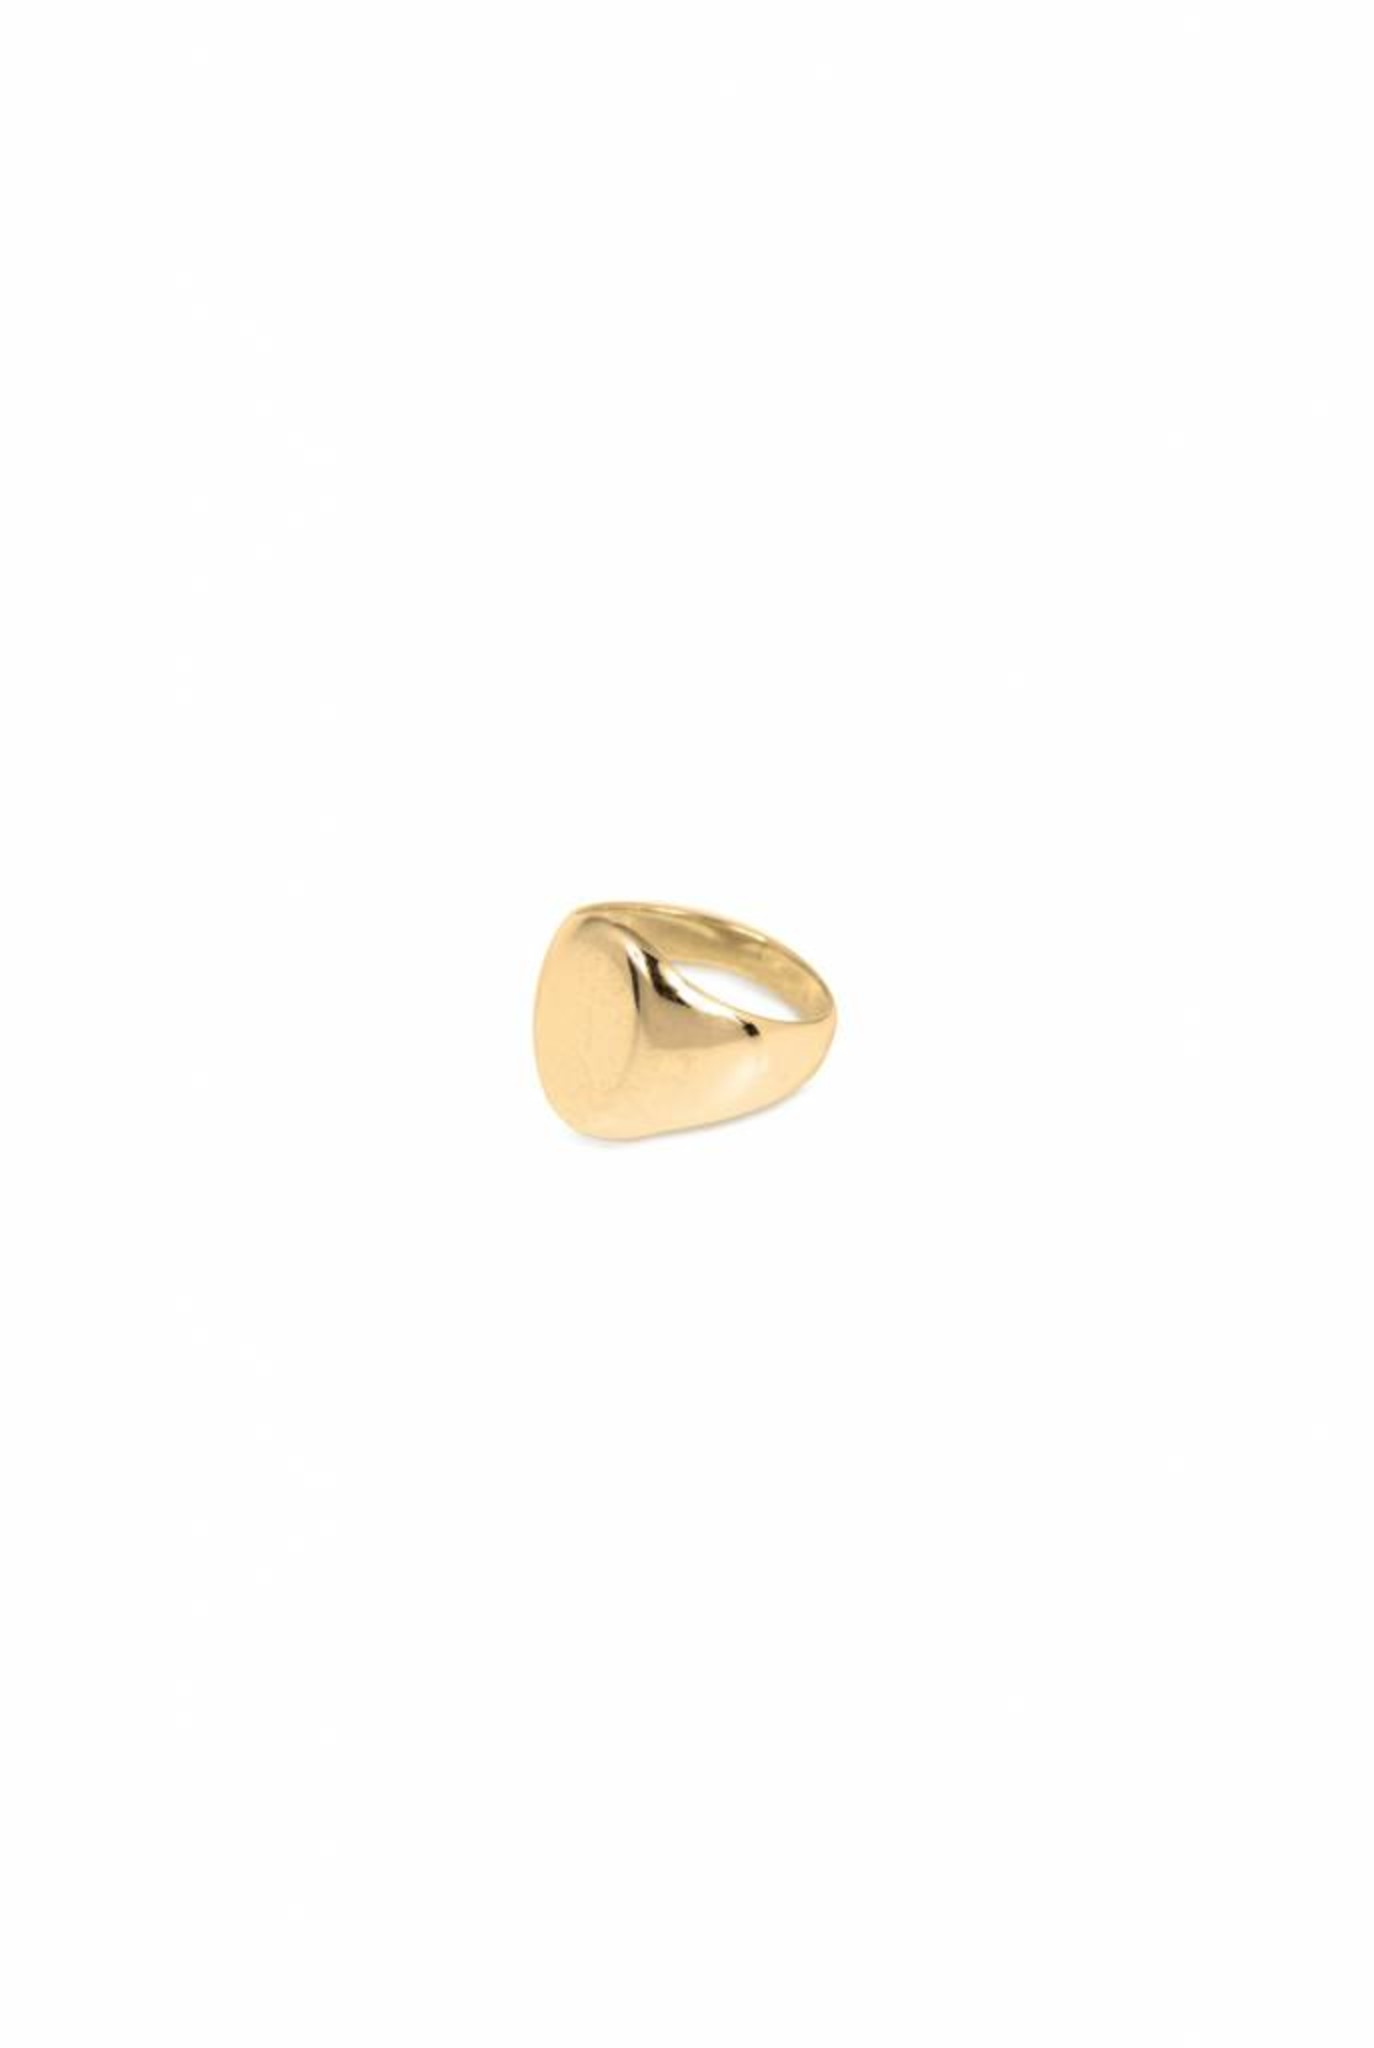 Ring goldplated oval seal